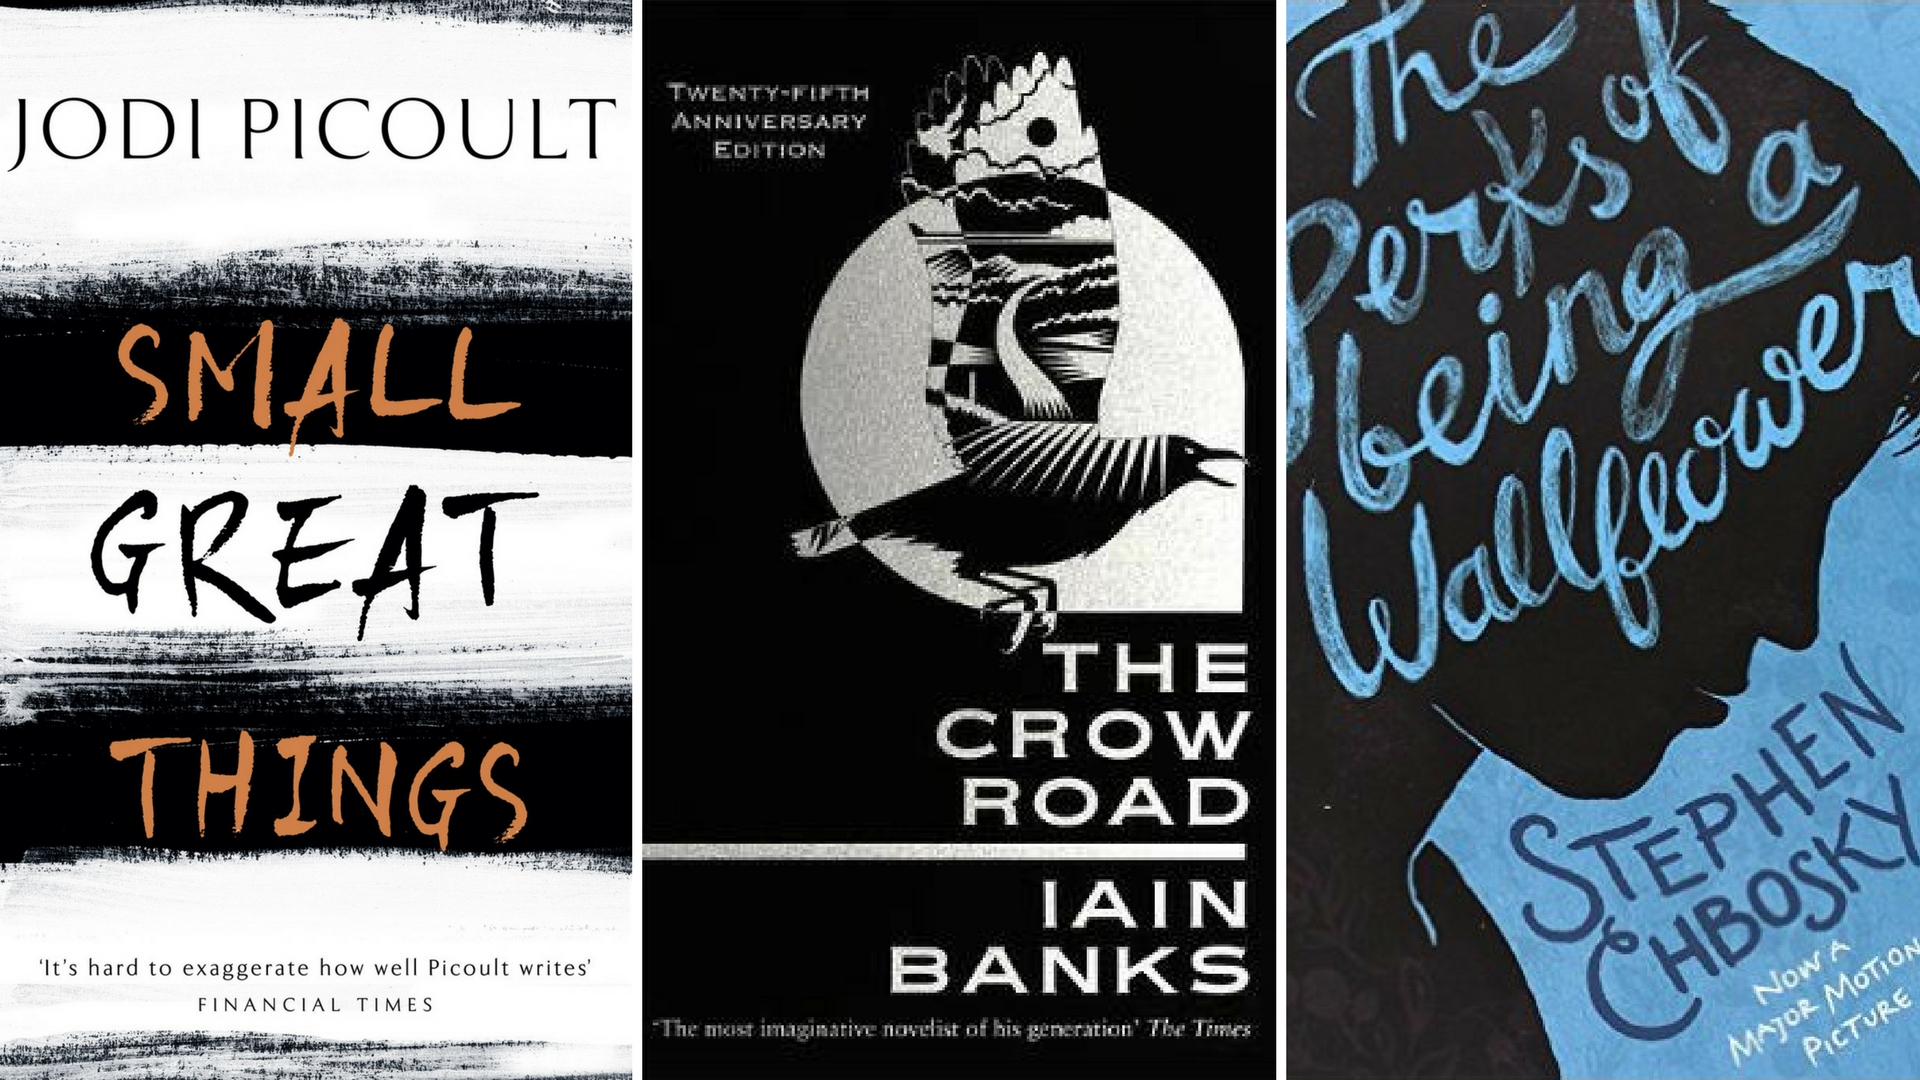 Small Great Things, The Crow Road and The Perks of Being a Wallflower